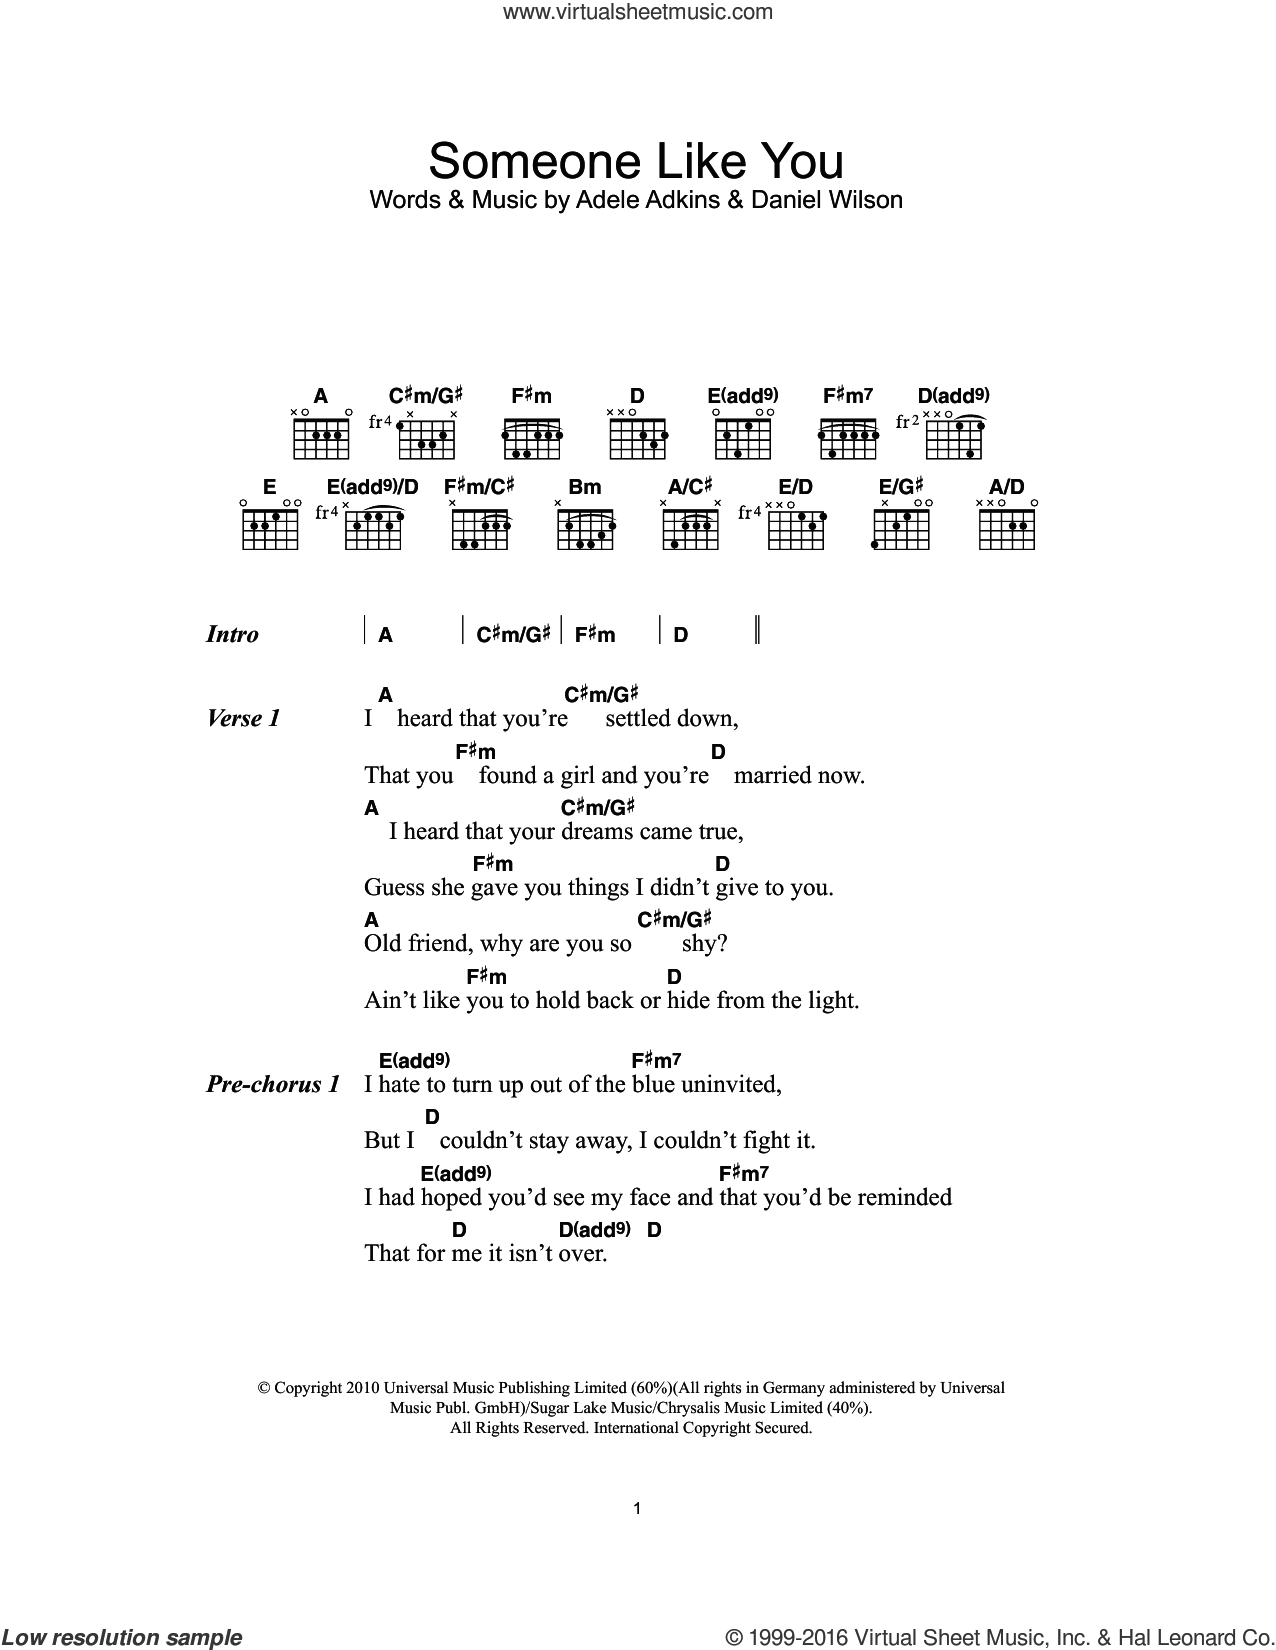 Adele - Someone Like You sheet music for guitar (chords) [PDF]